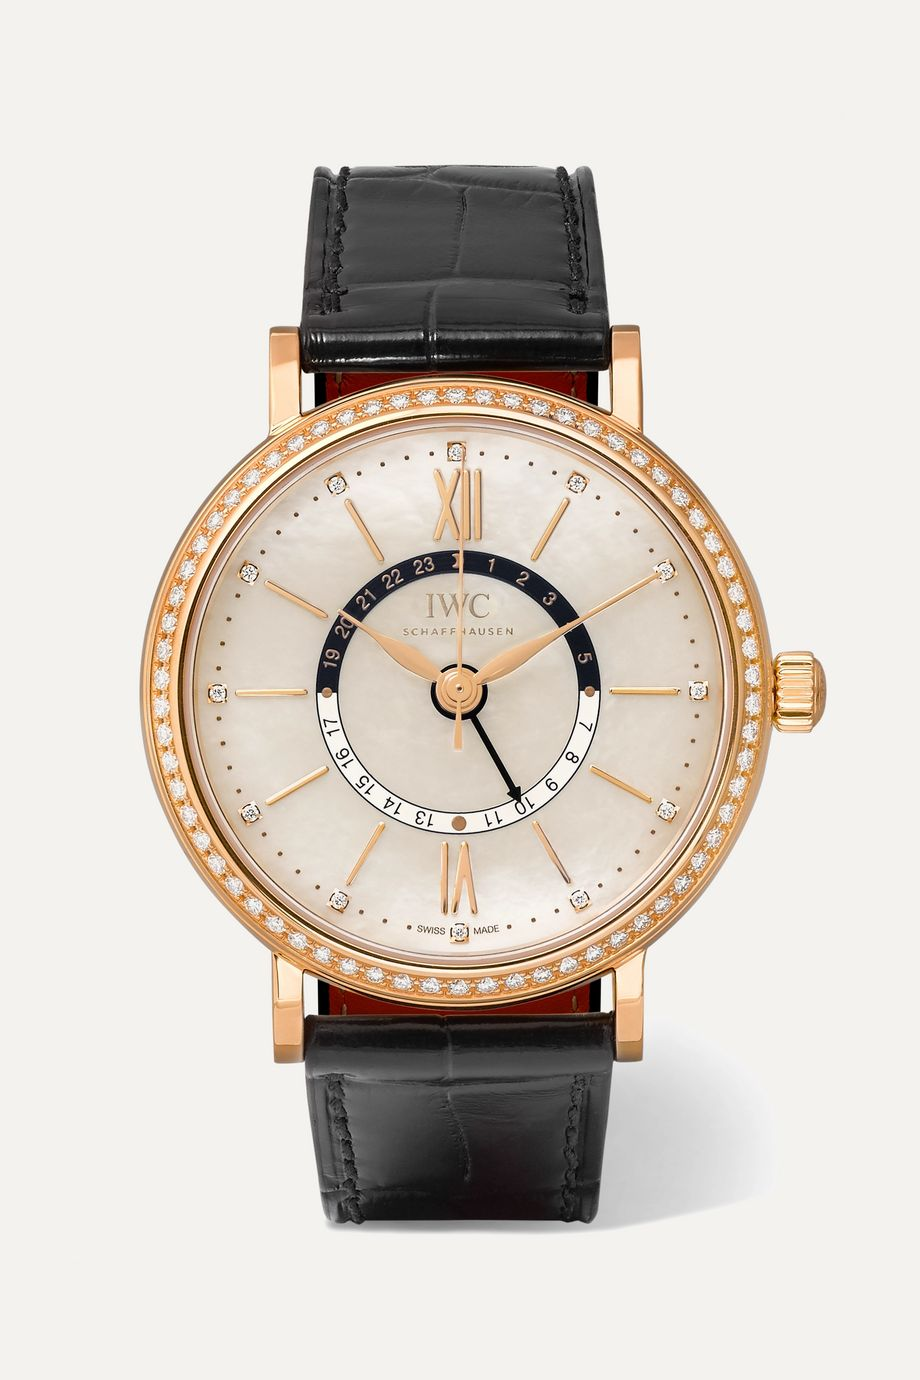 IWC SCHAFFHAUSEN Portofino Automatic Day & Night 37 alligator, 18-karat red gold, mother-of-pearl and diamond watch